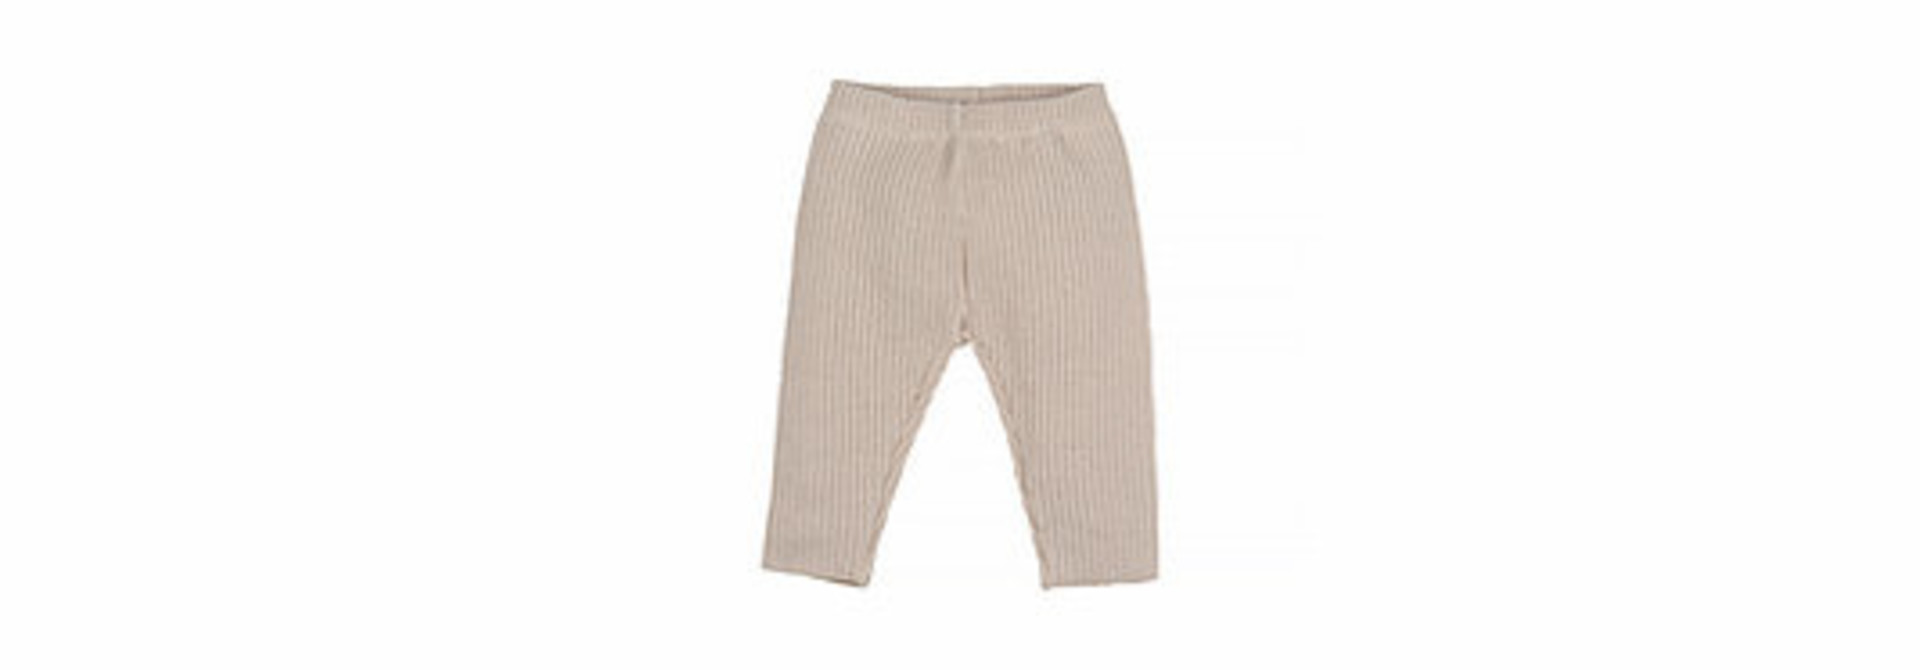 Baby knitted rib pants - natural